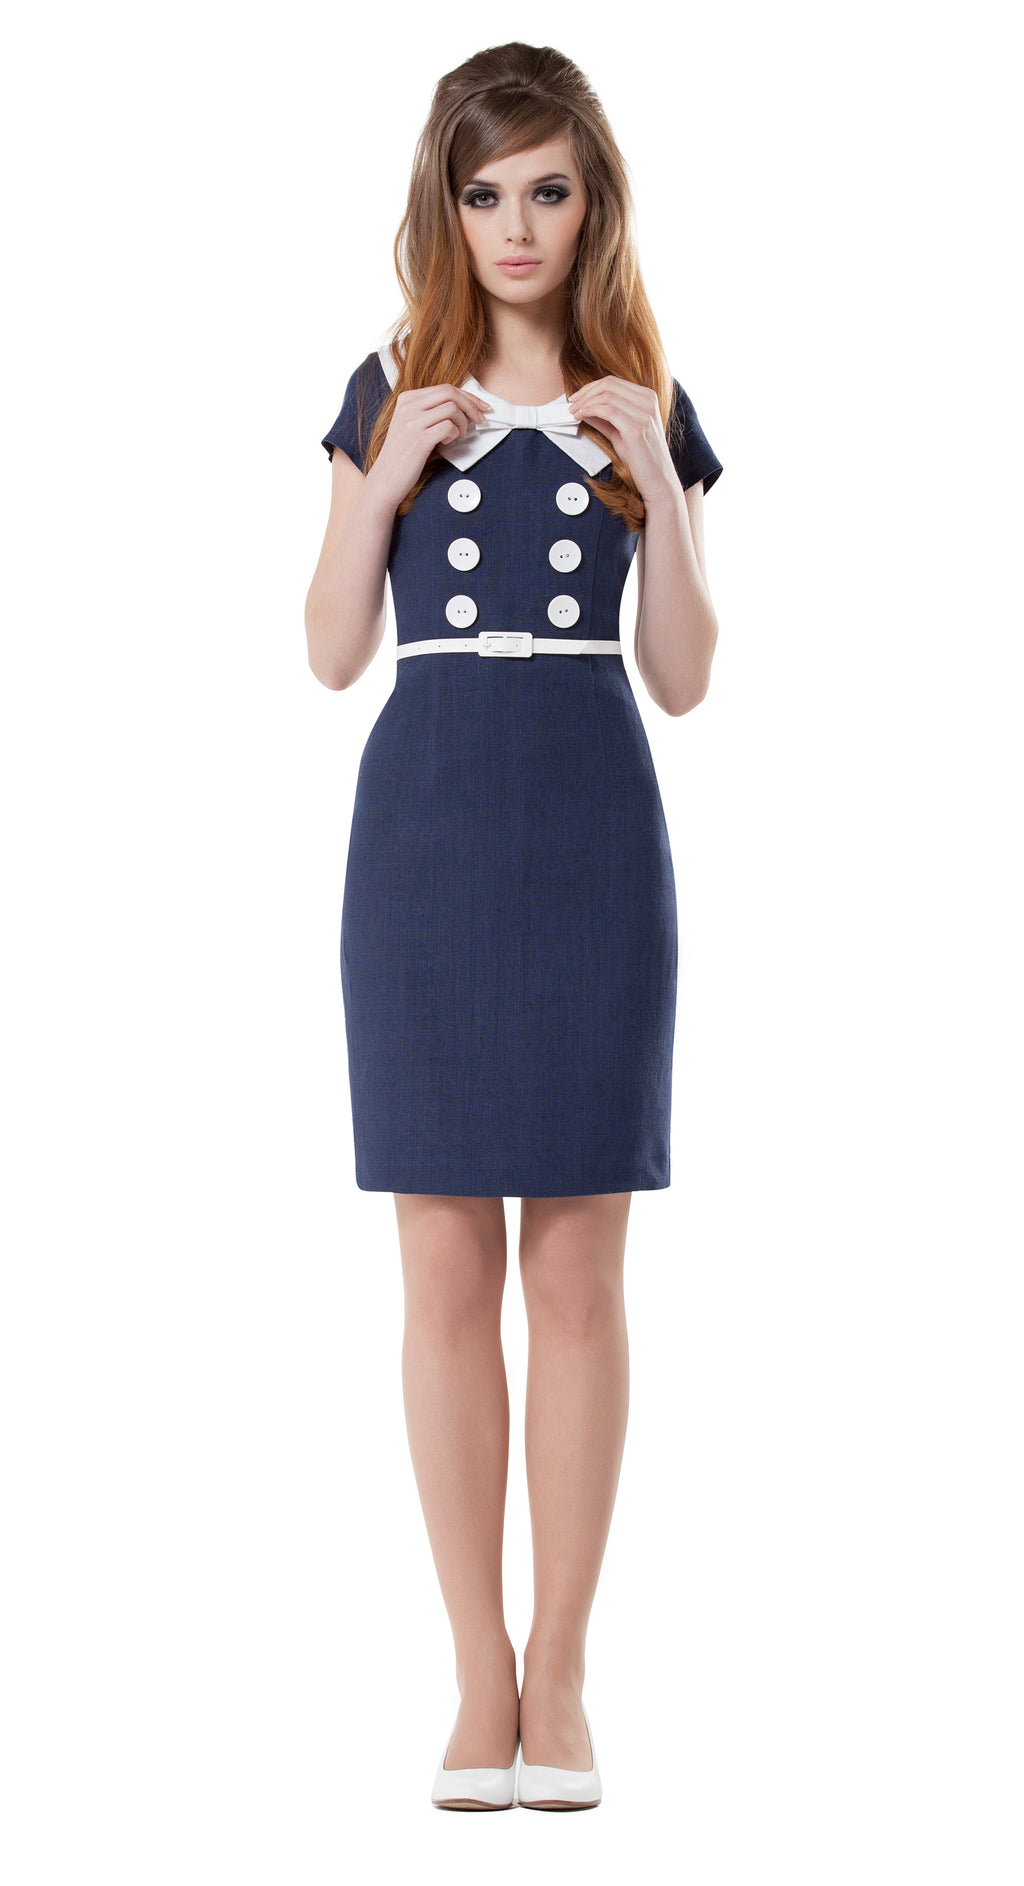 NAVY BLUE LARGE COLLAR DRESS WITH BOW